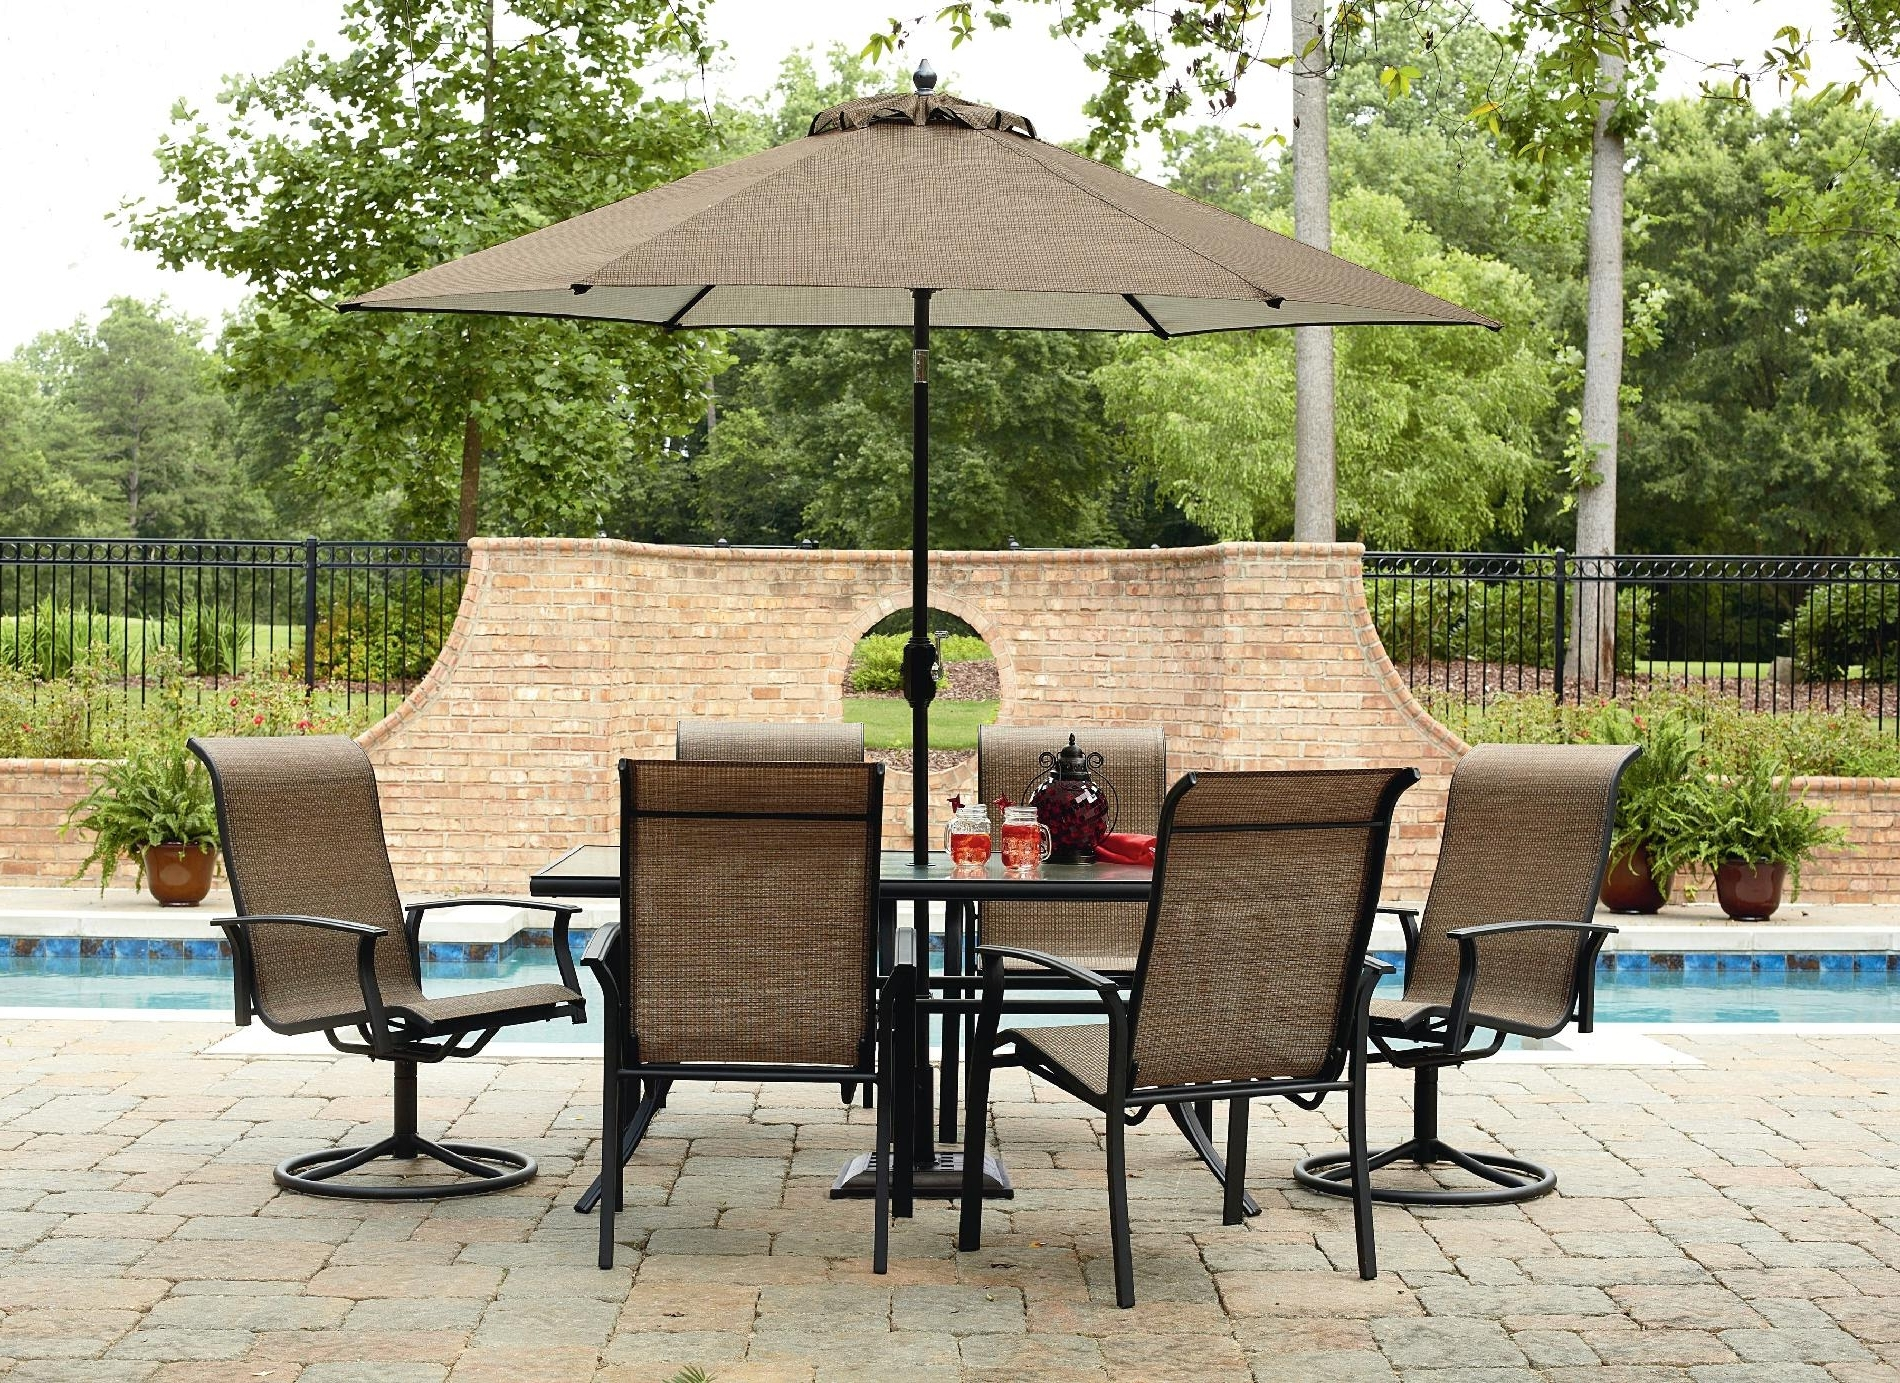 Patio : Small Patio Table And Chairs Patios Horsham Redlands Within Preferred Patio Conversation Sets With Umbrella (View 17 of 20)